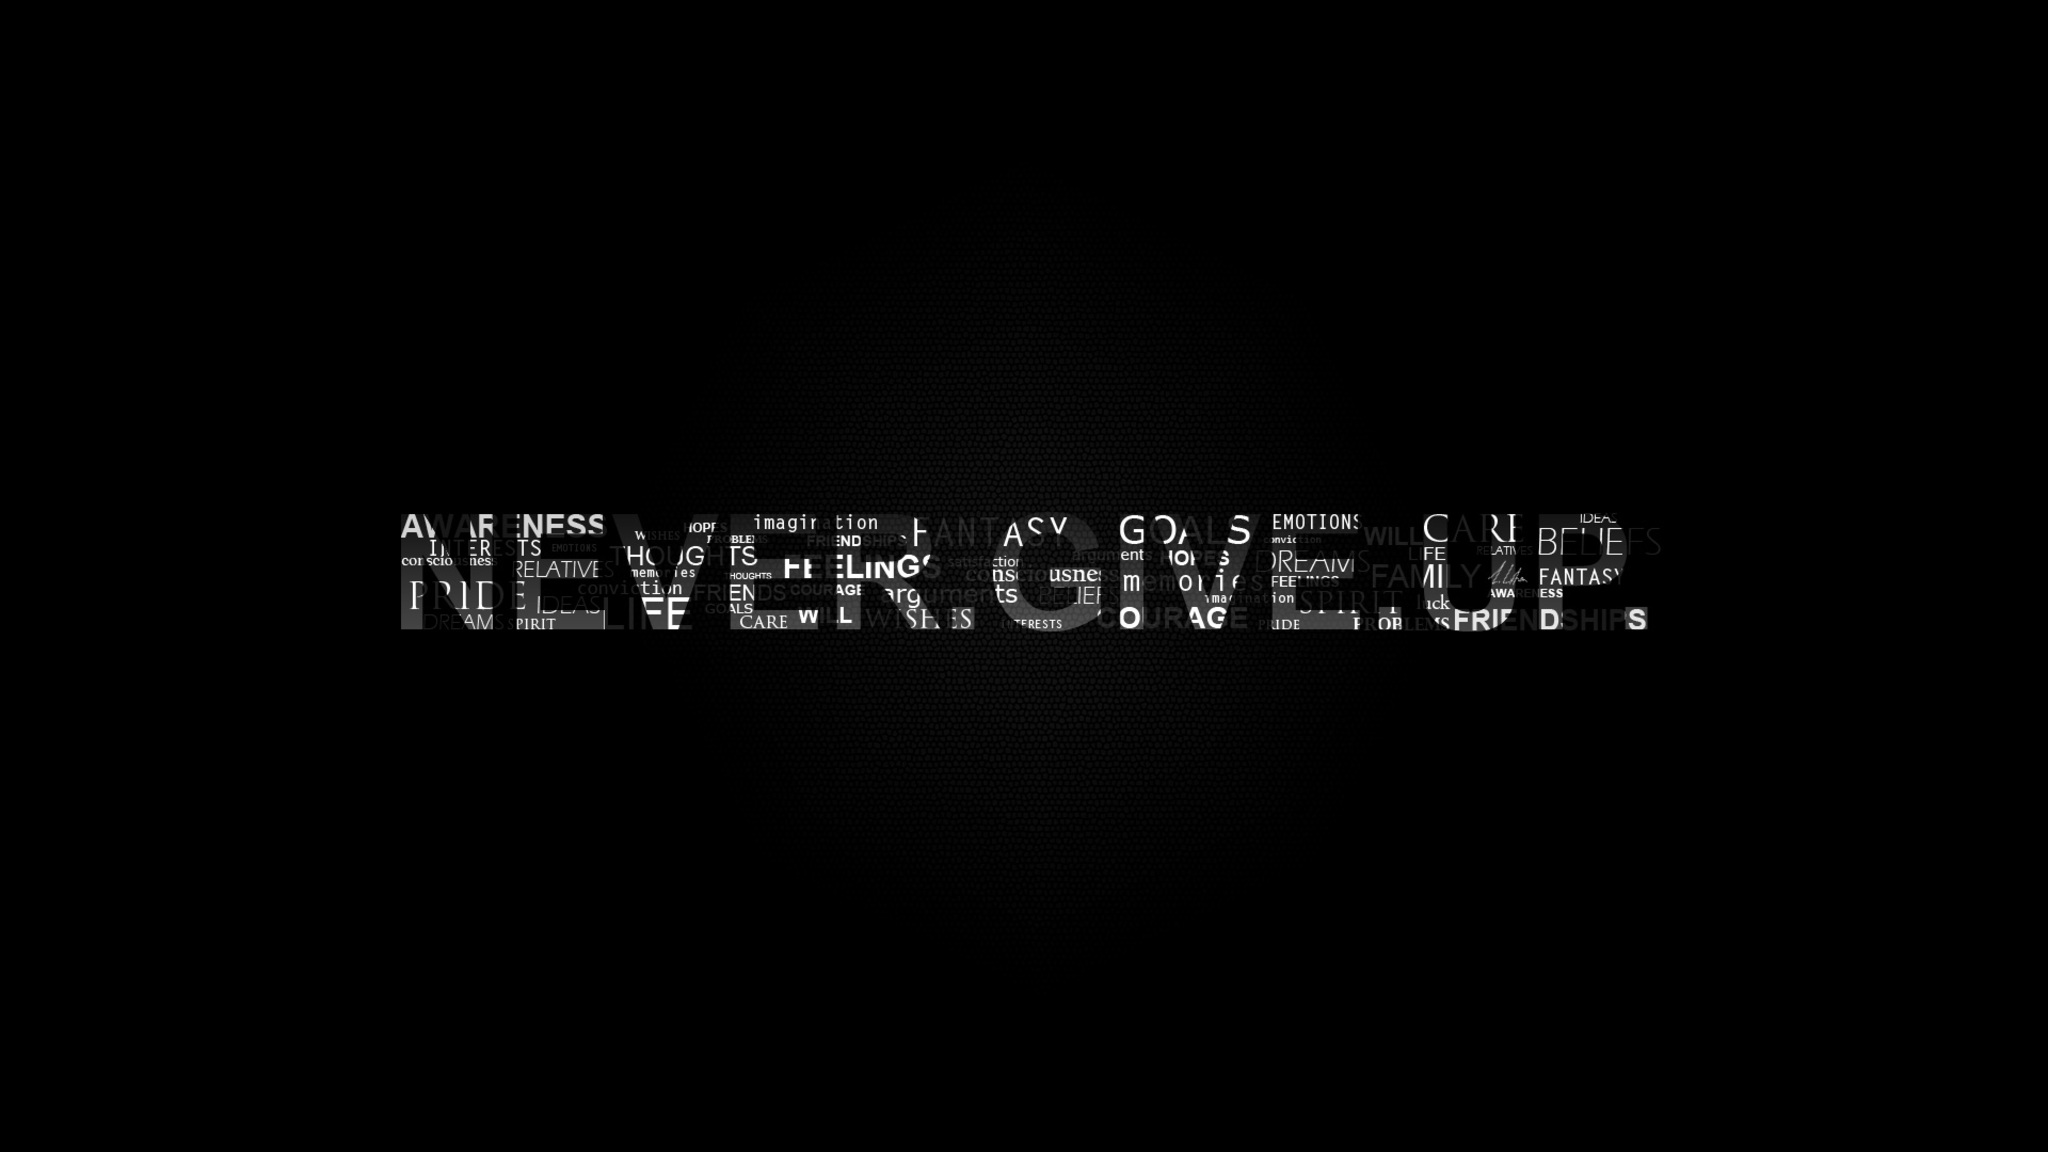 2048x1152 never give up 2048x1152 resolution hd 4k wallpapers